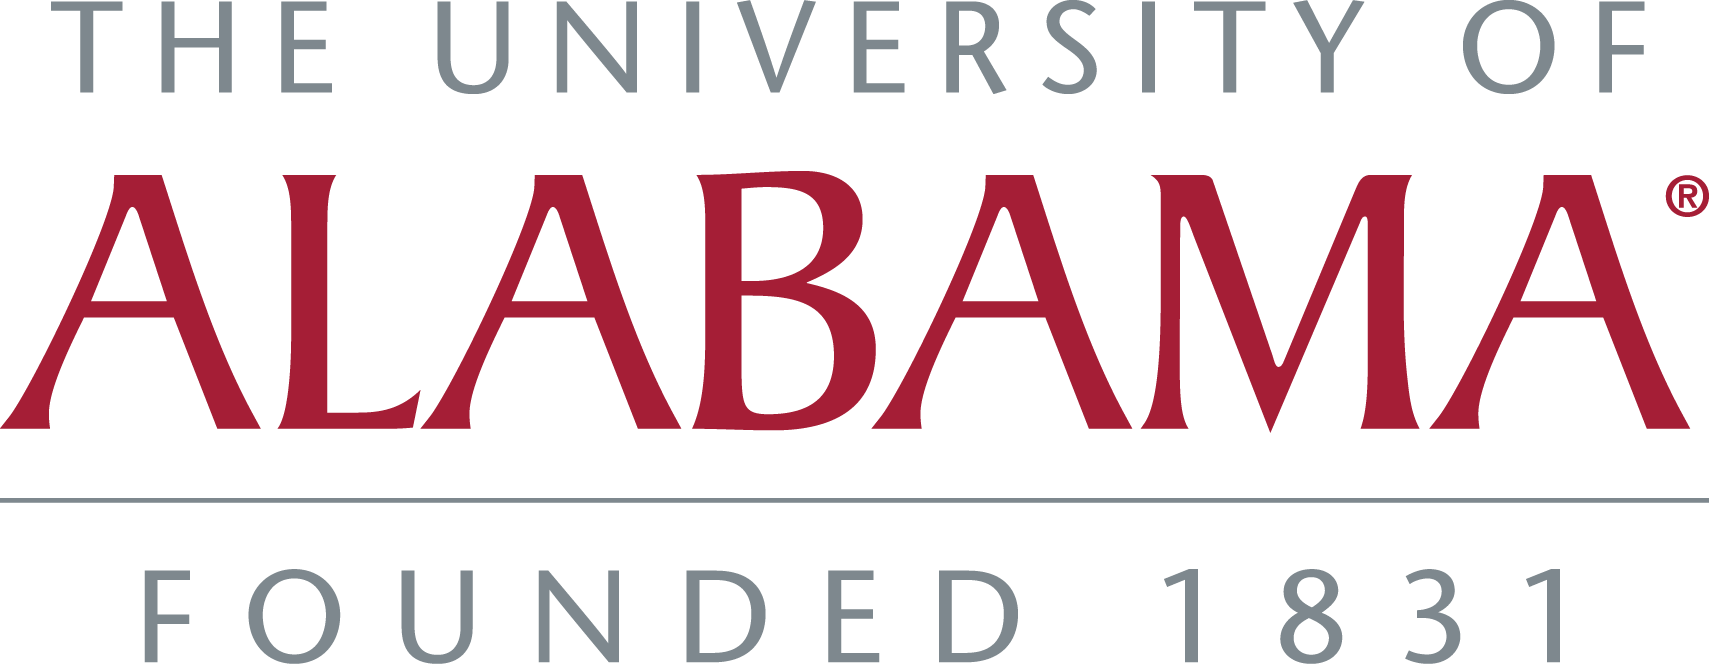 University of alabama football clipart clip transparent download Logos & Wordmarks | Division of Strategic Communications | The ... clip transparent download